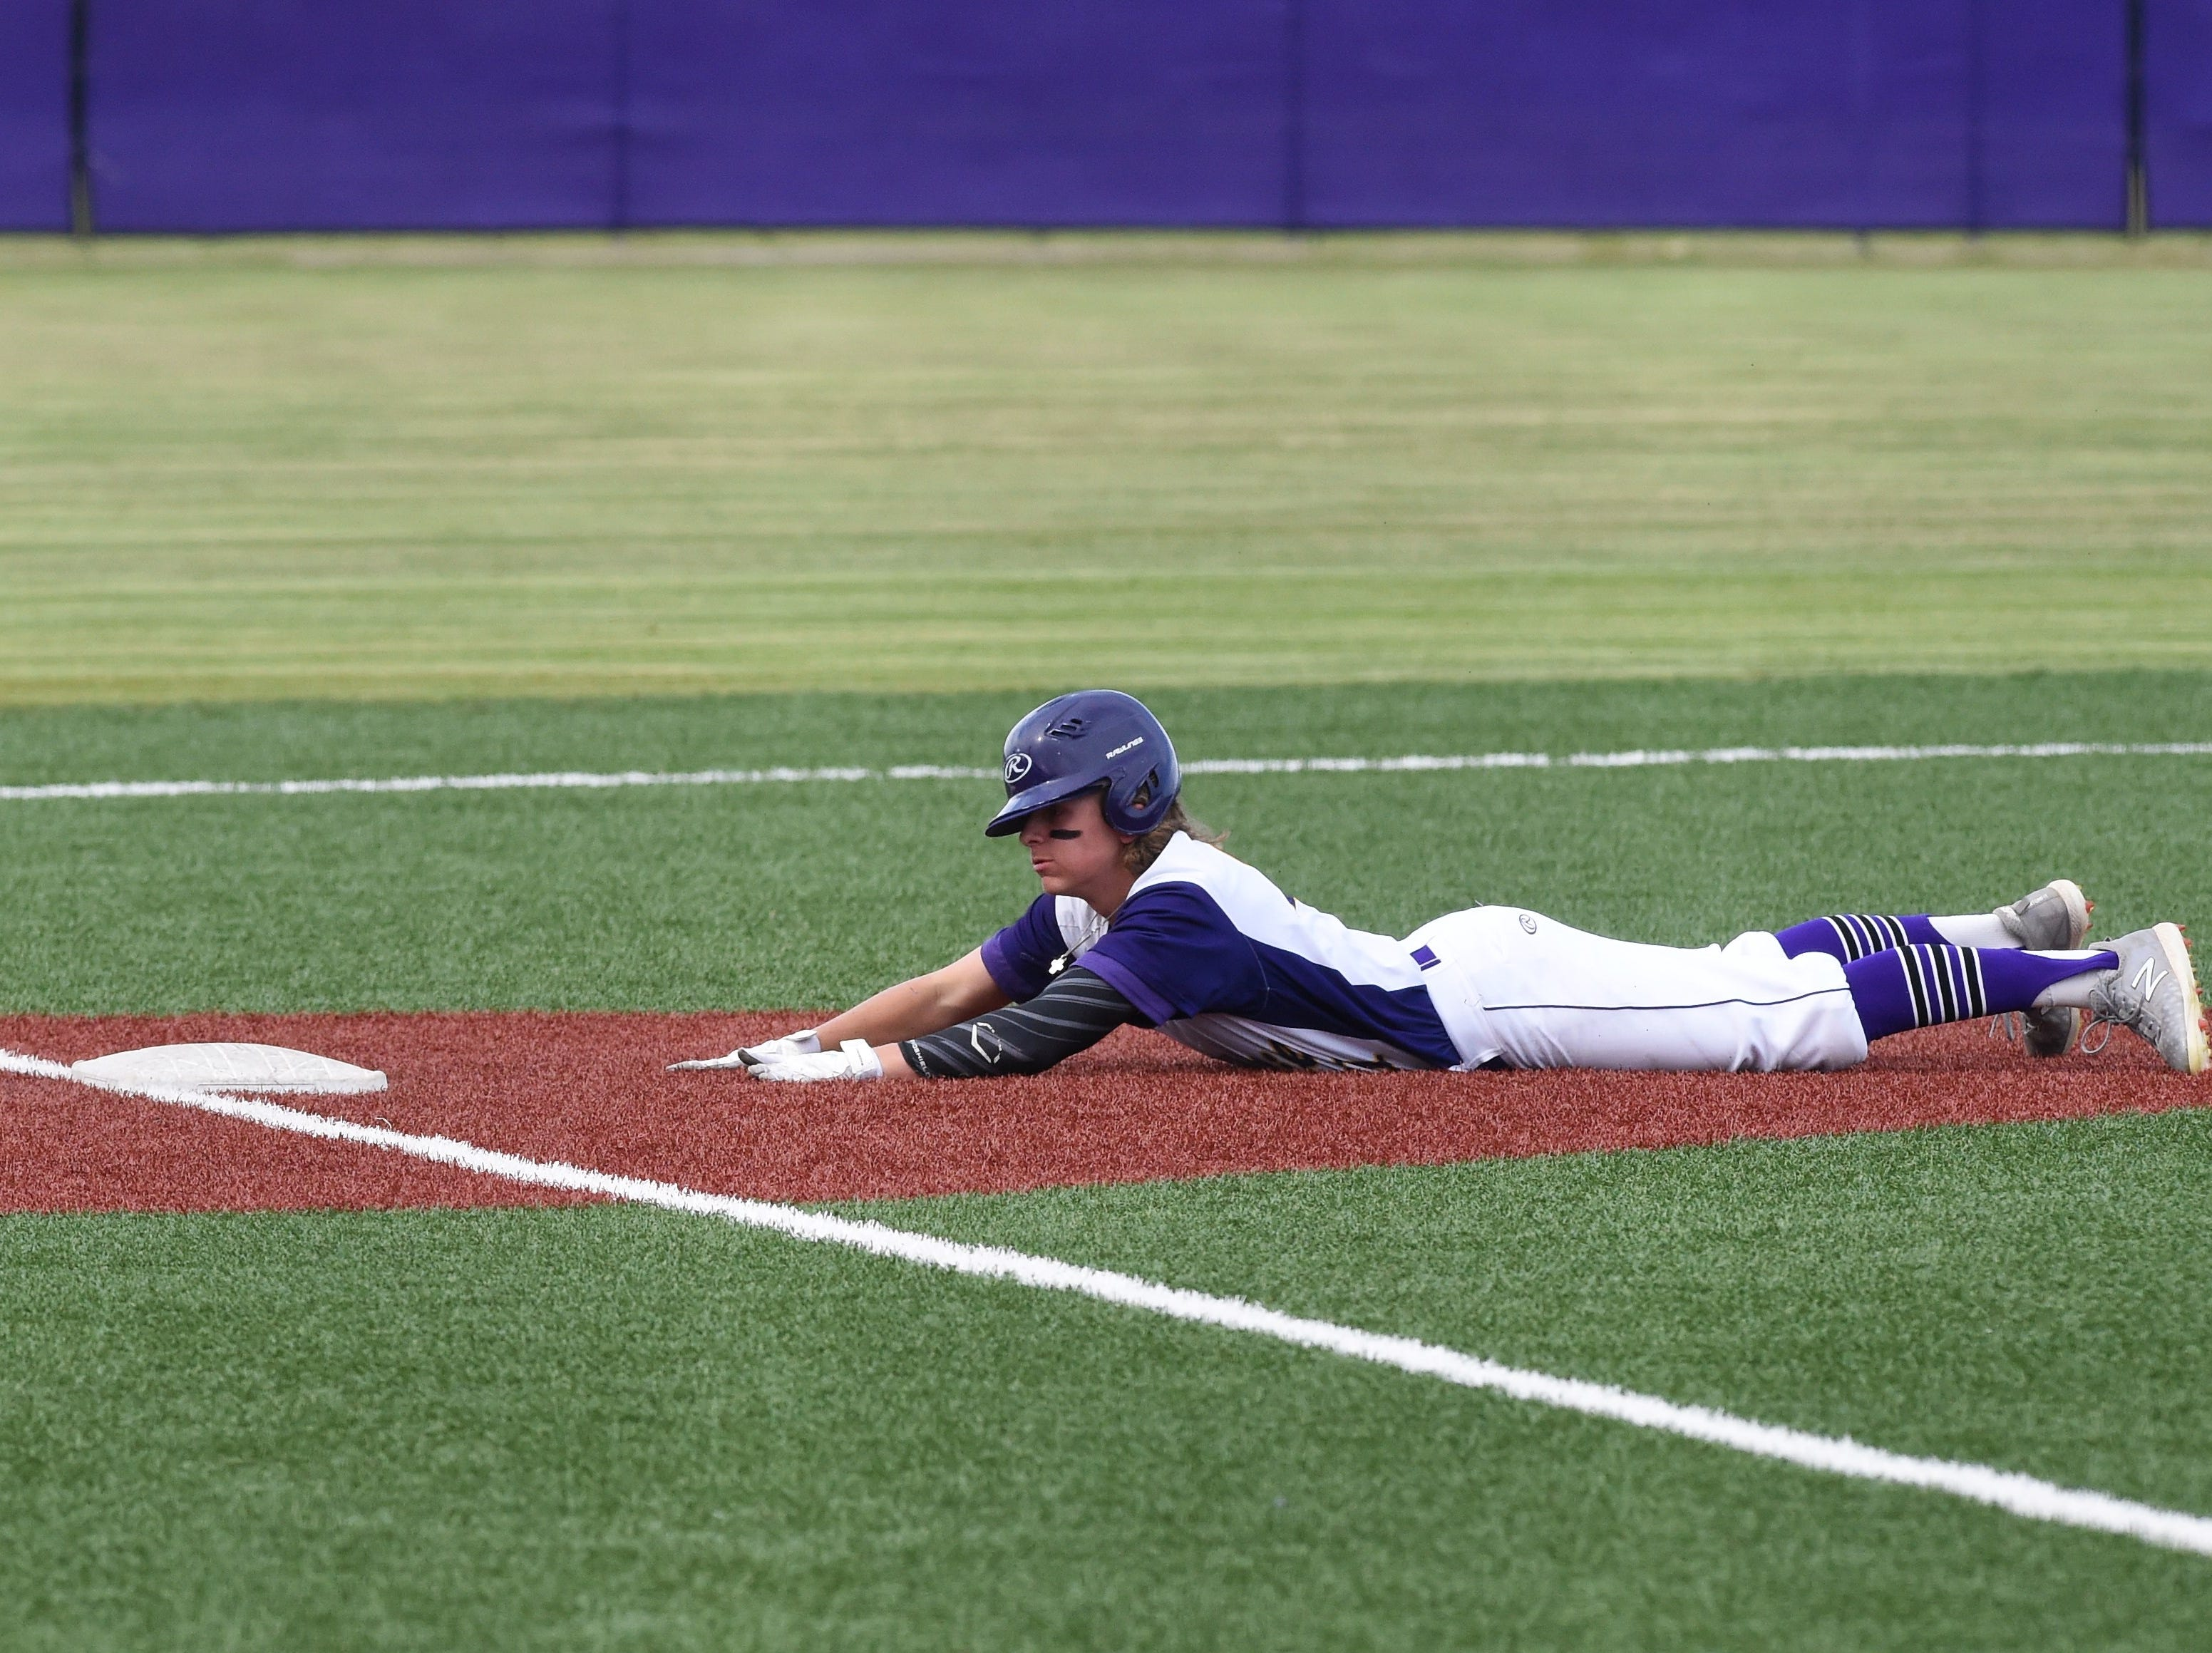 Wylie's Cooper Cothran (21) slides safely into third after stealing second and advancing on an error at Bulldog Field on Friday, April 12, 2019. Cothran would go on to score on another error in the 4-3 win.